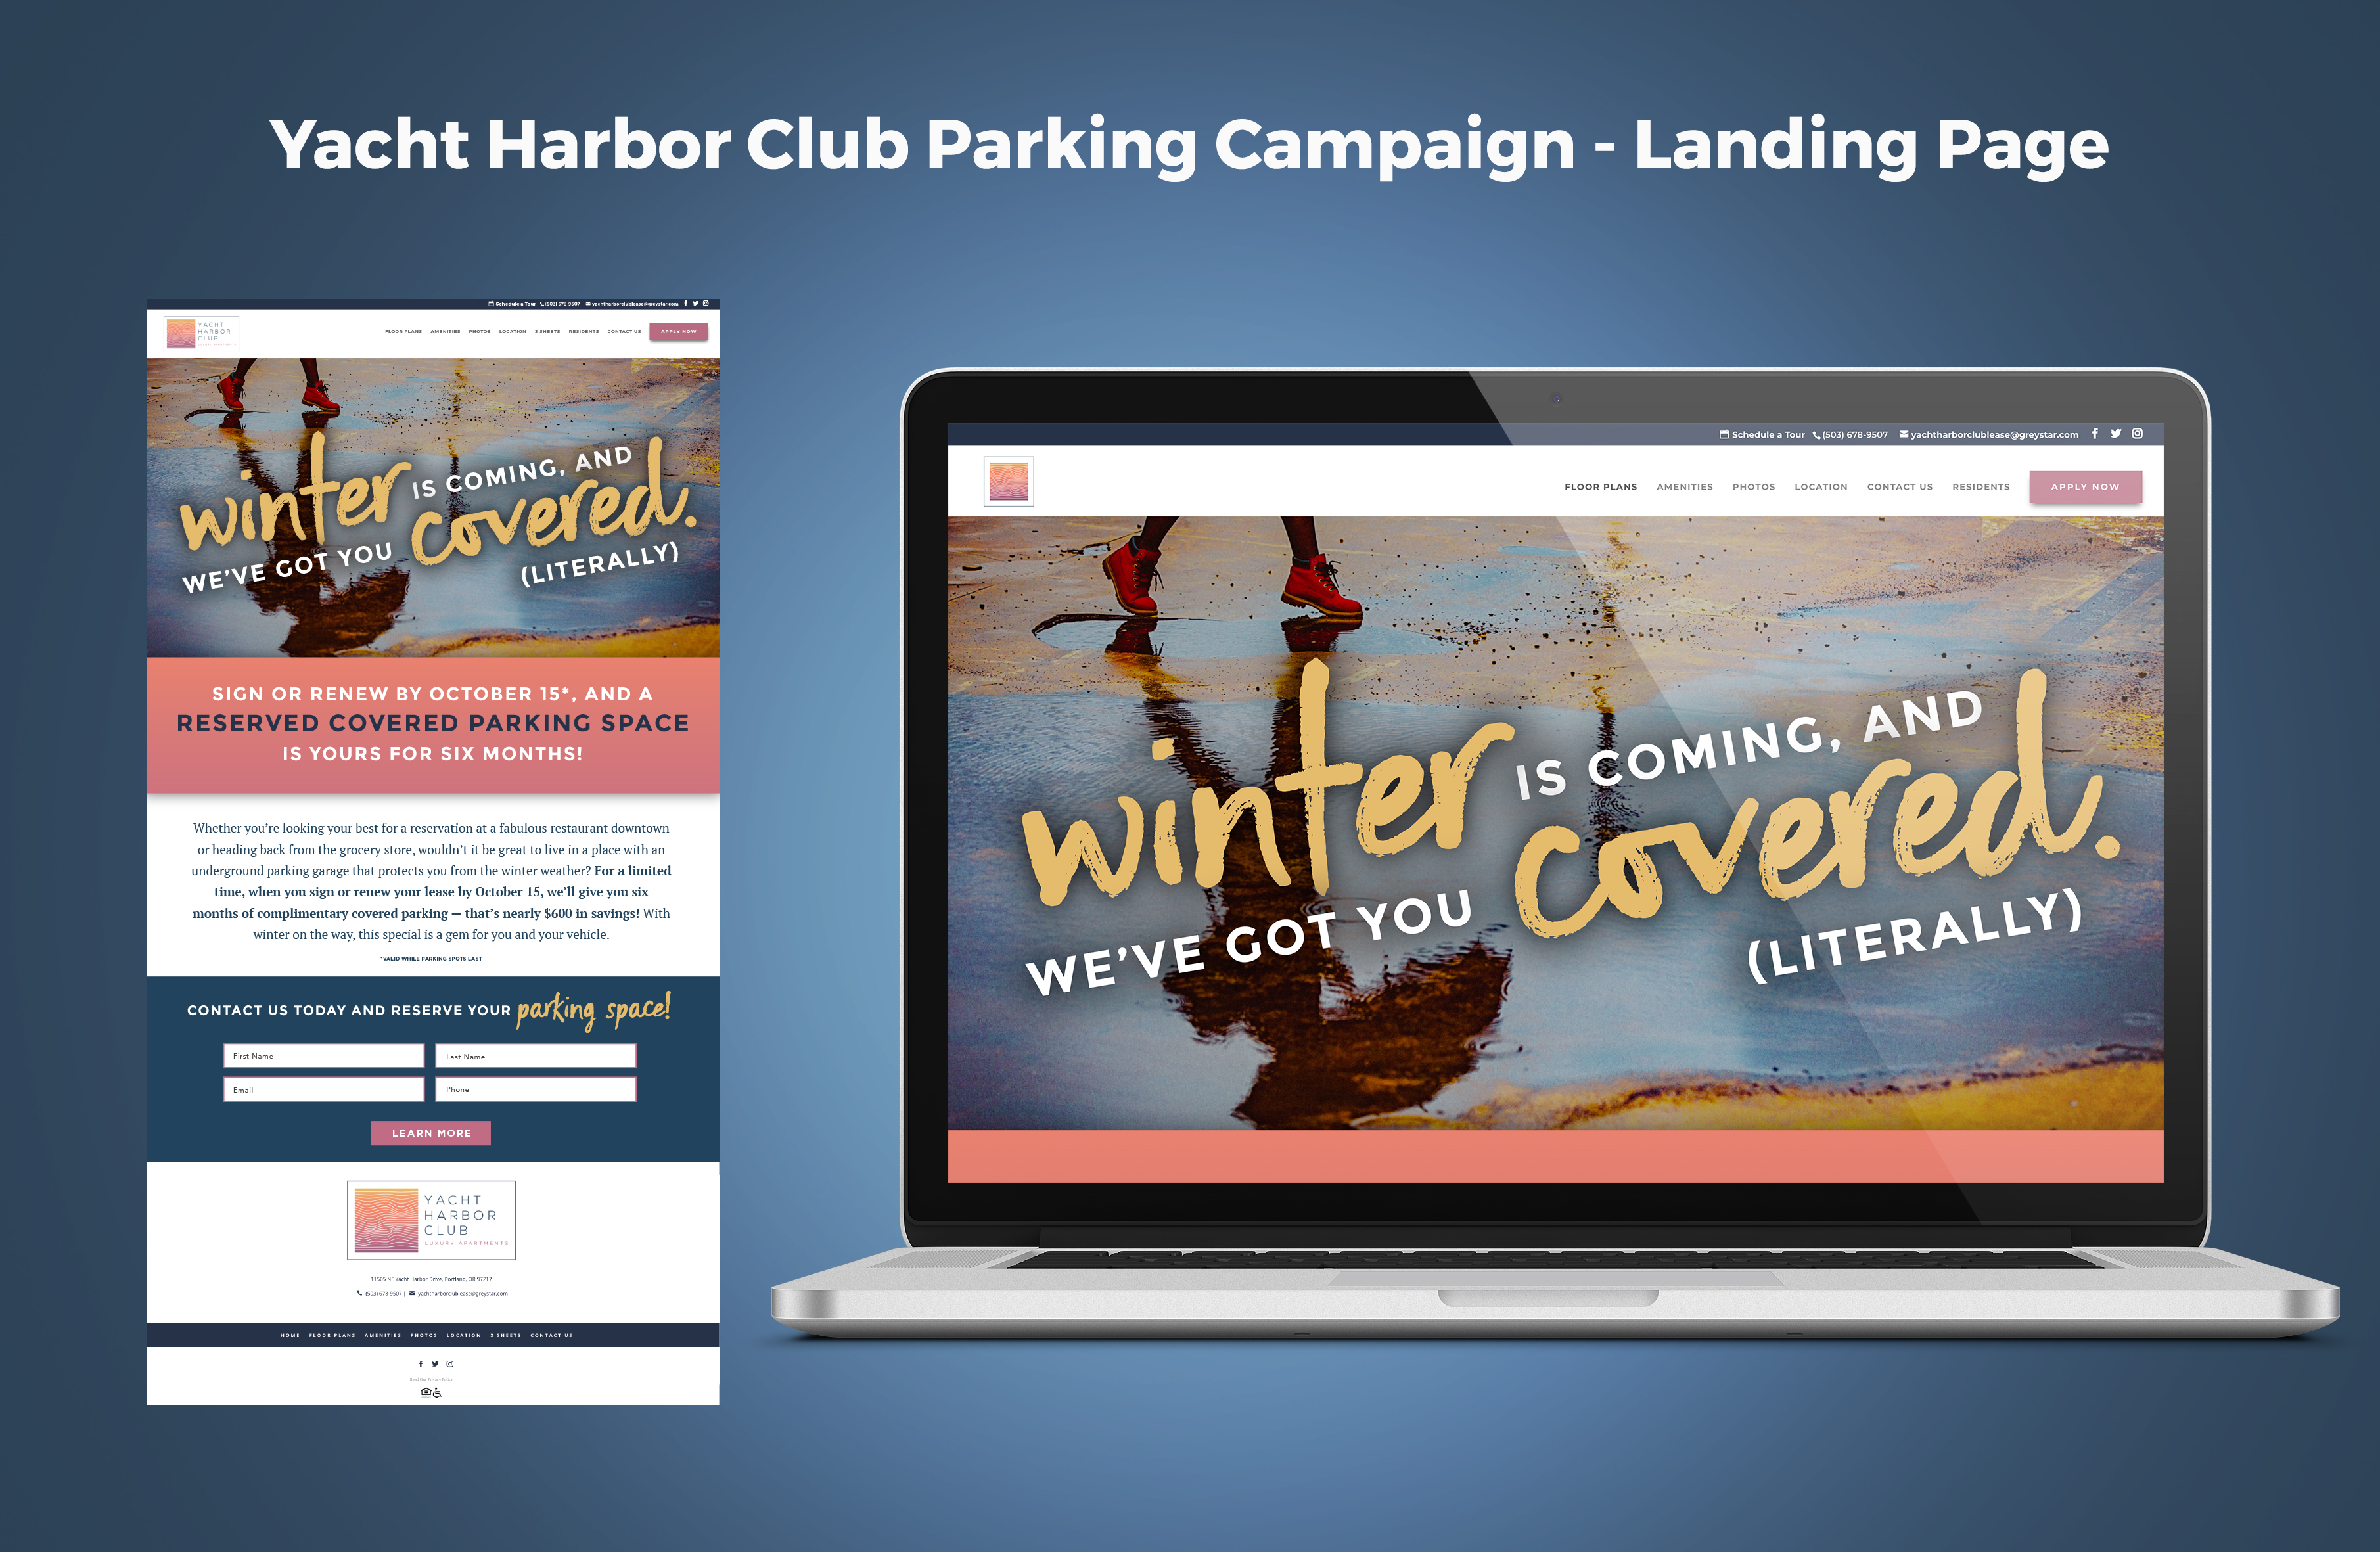 Yacht Harbor Club Parking Campaign Landing Page Graphic